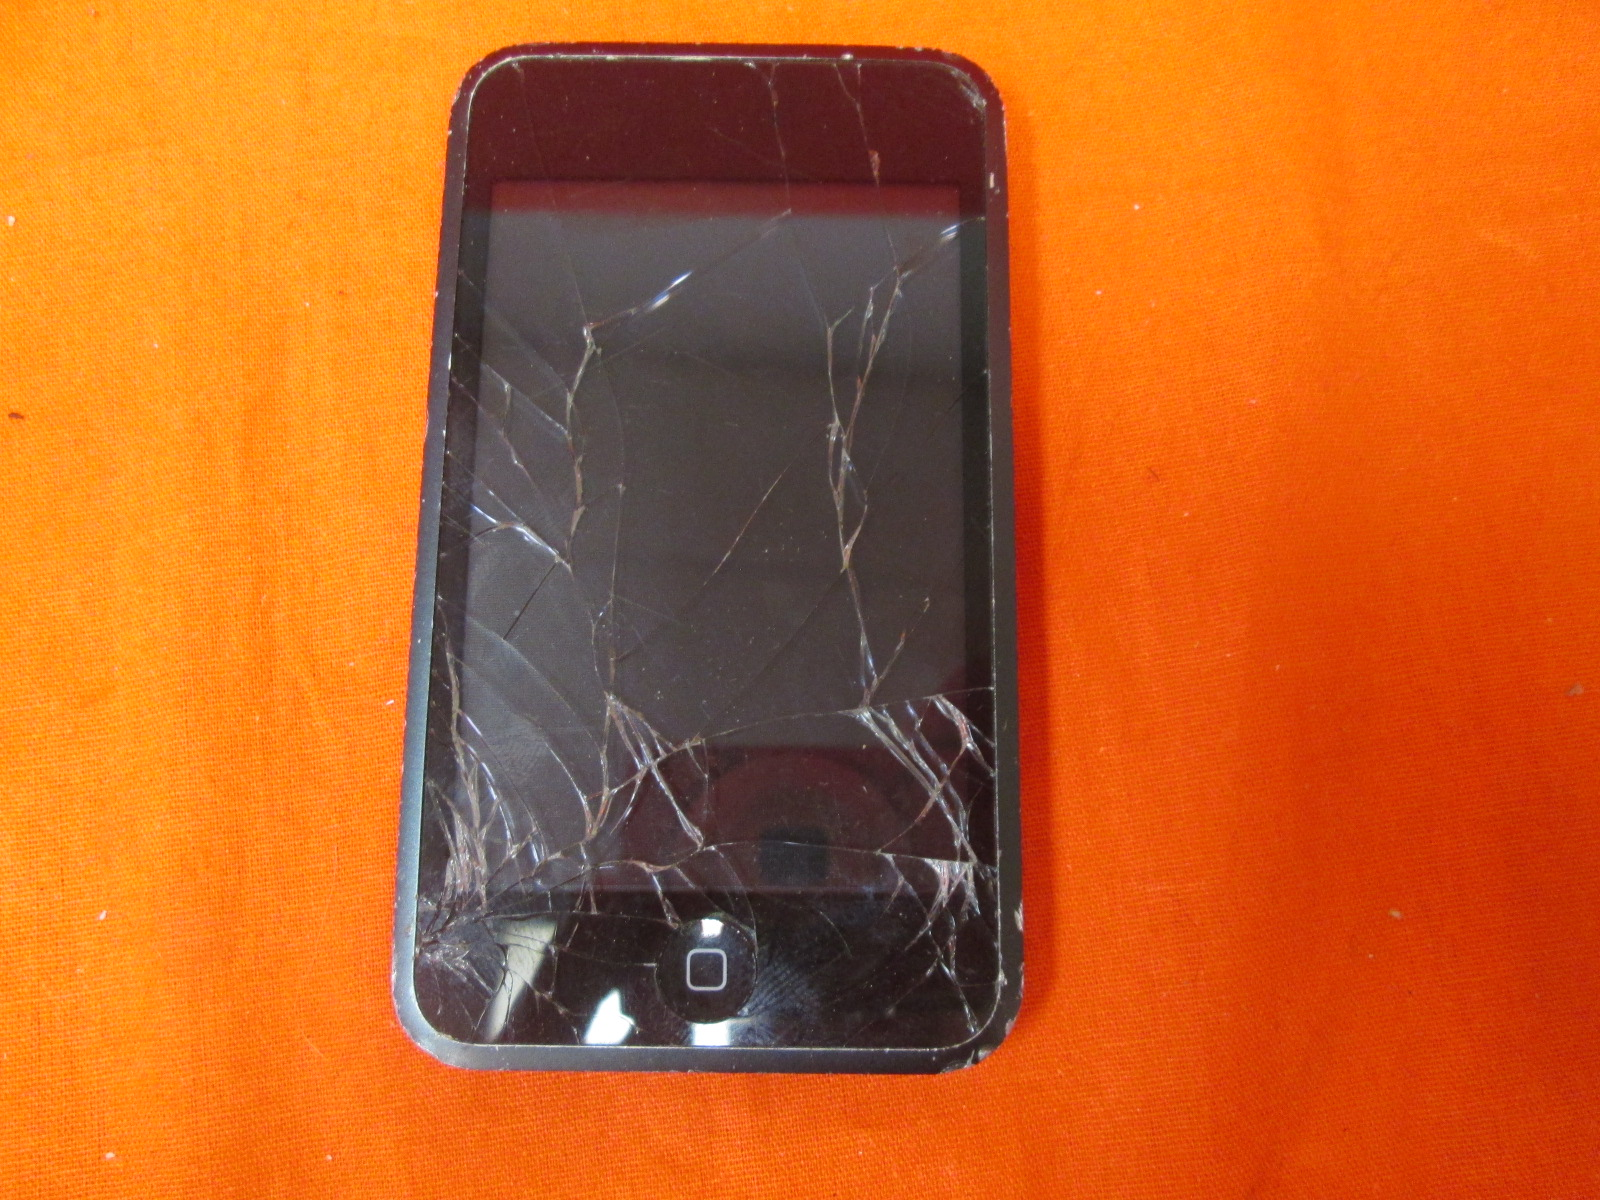 Broken Apple iPod Touch 8 GB 1st Generation